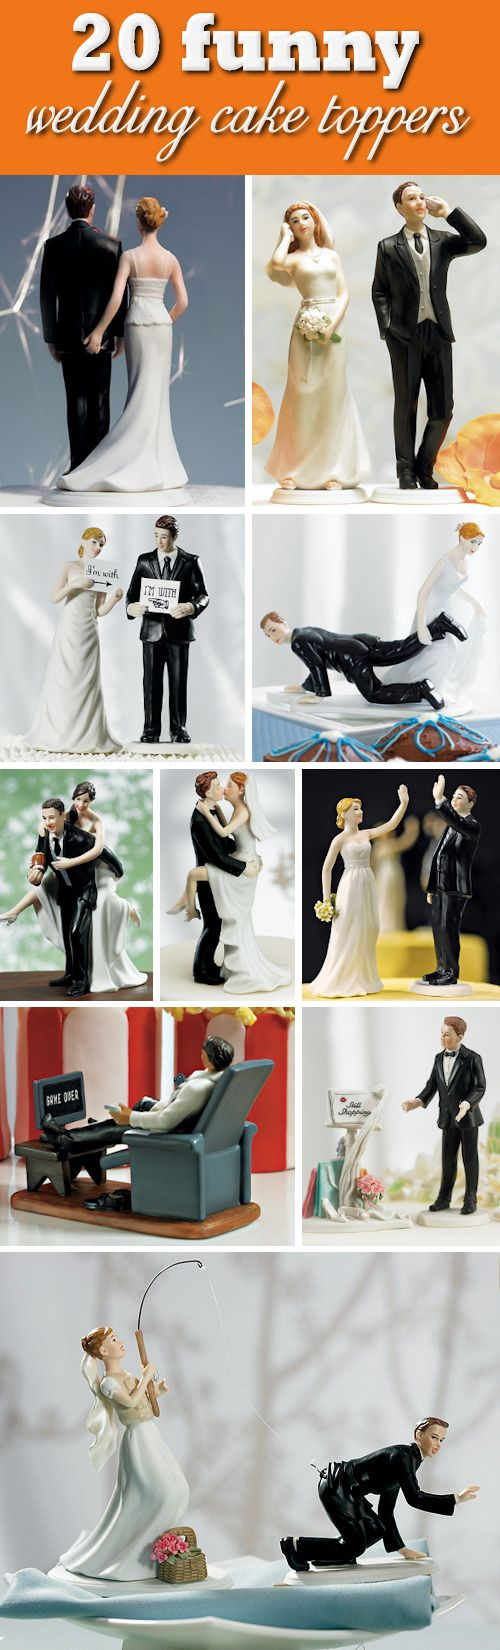 20 Humorous Funny Wedding Cake Toppers That Will Have Your Guests